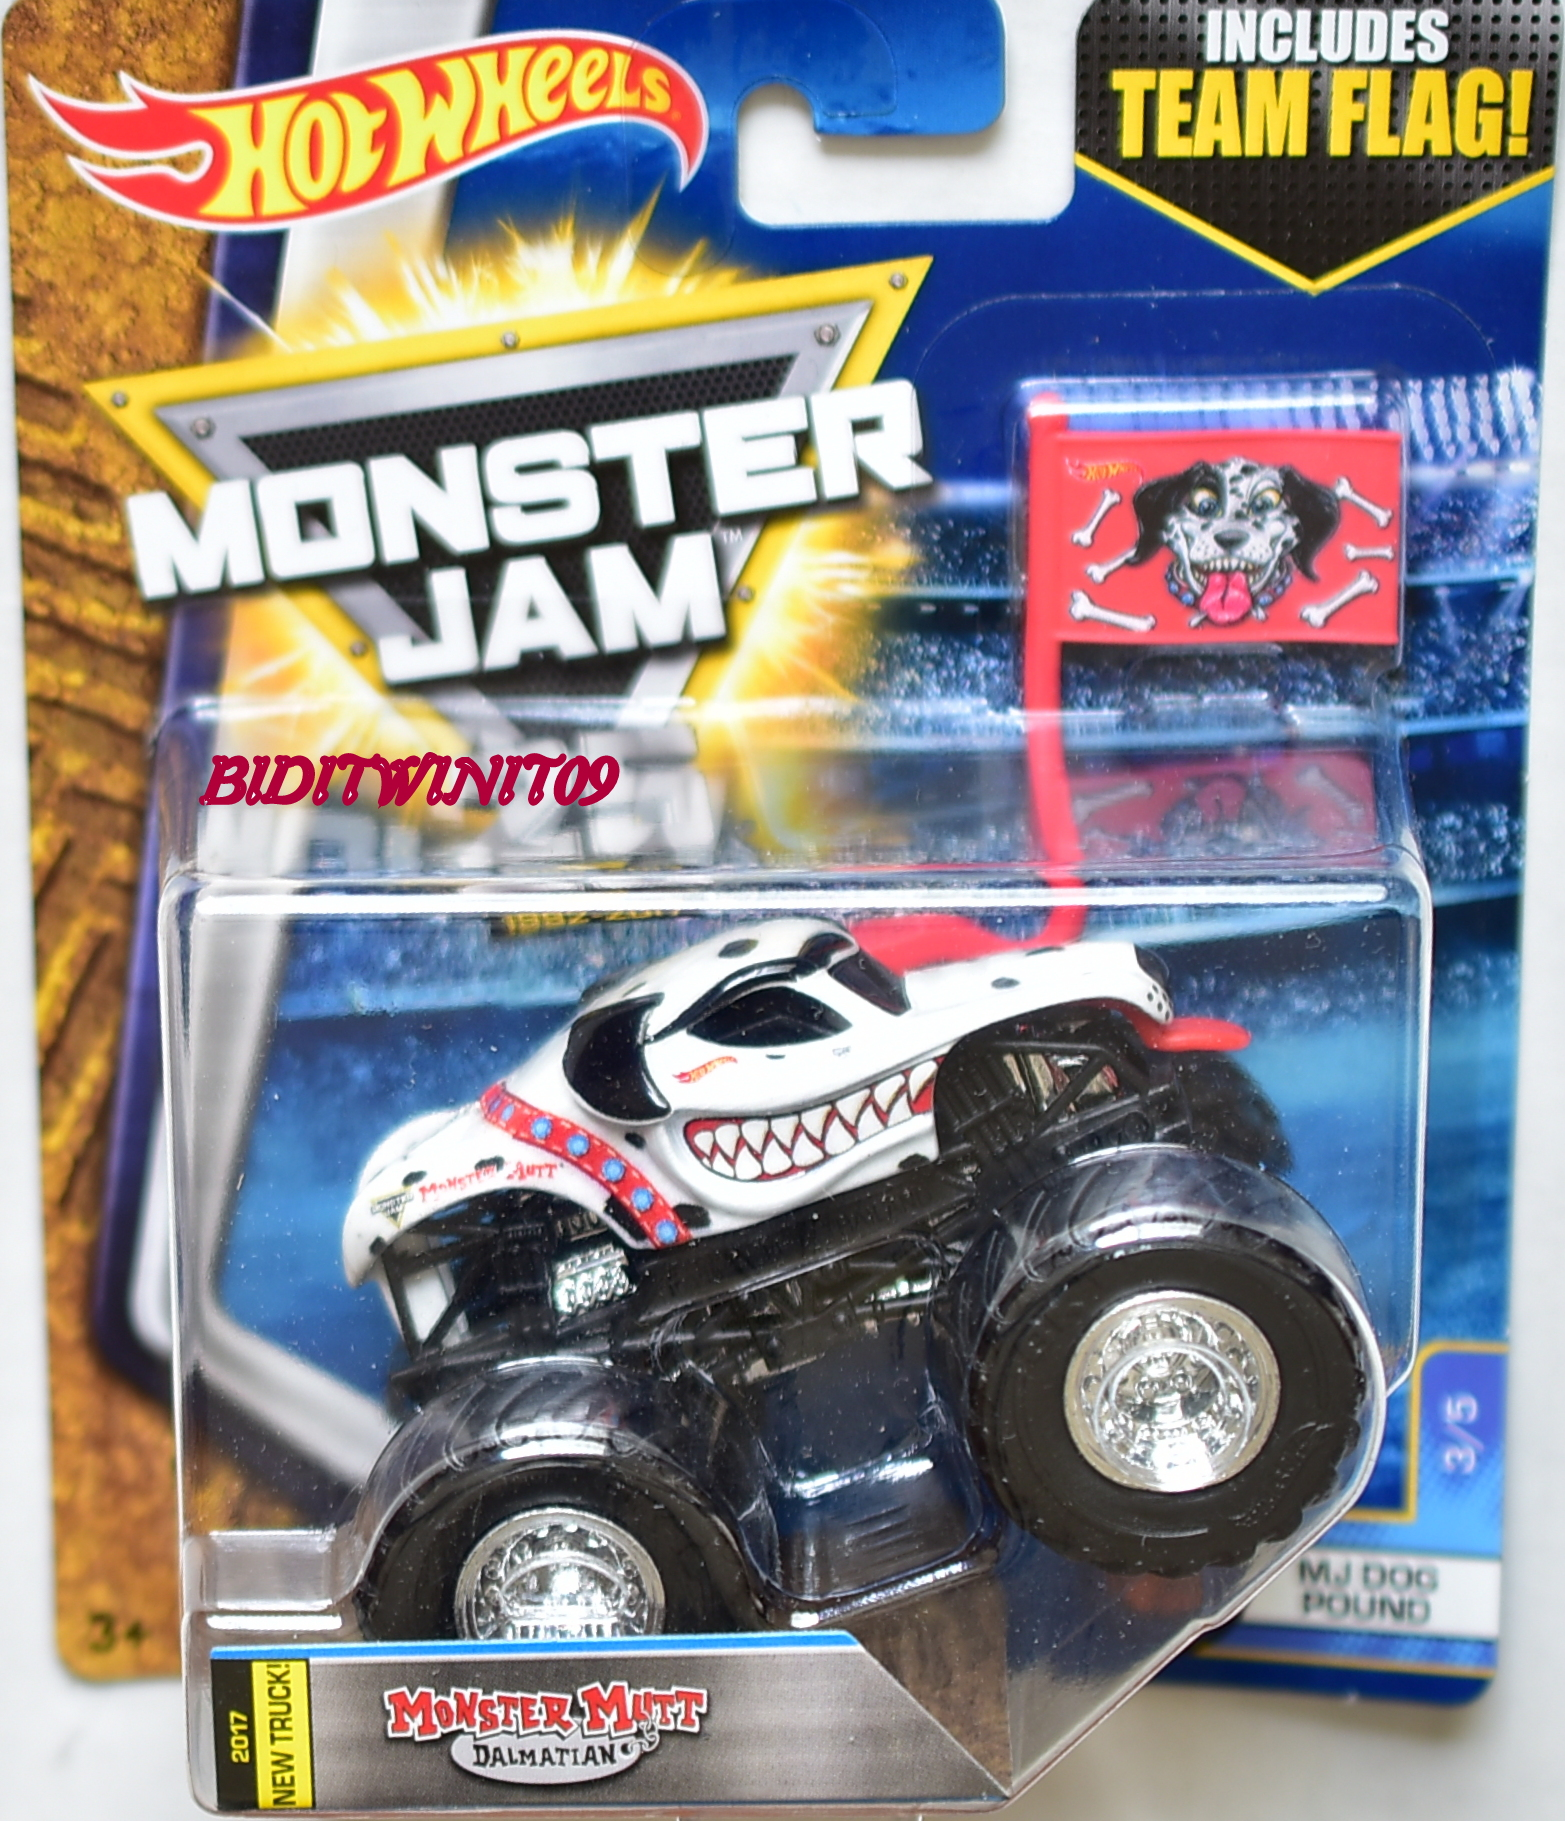 HOT WHEELS 2017 MONSTER JAM INCLUDES MONSTER MUTT DALMATIAN MJ DOD POUND